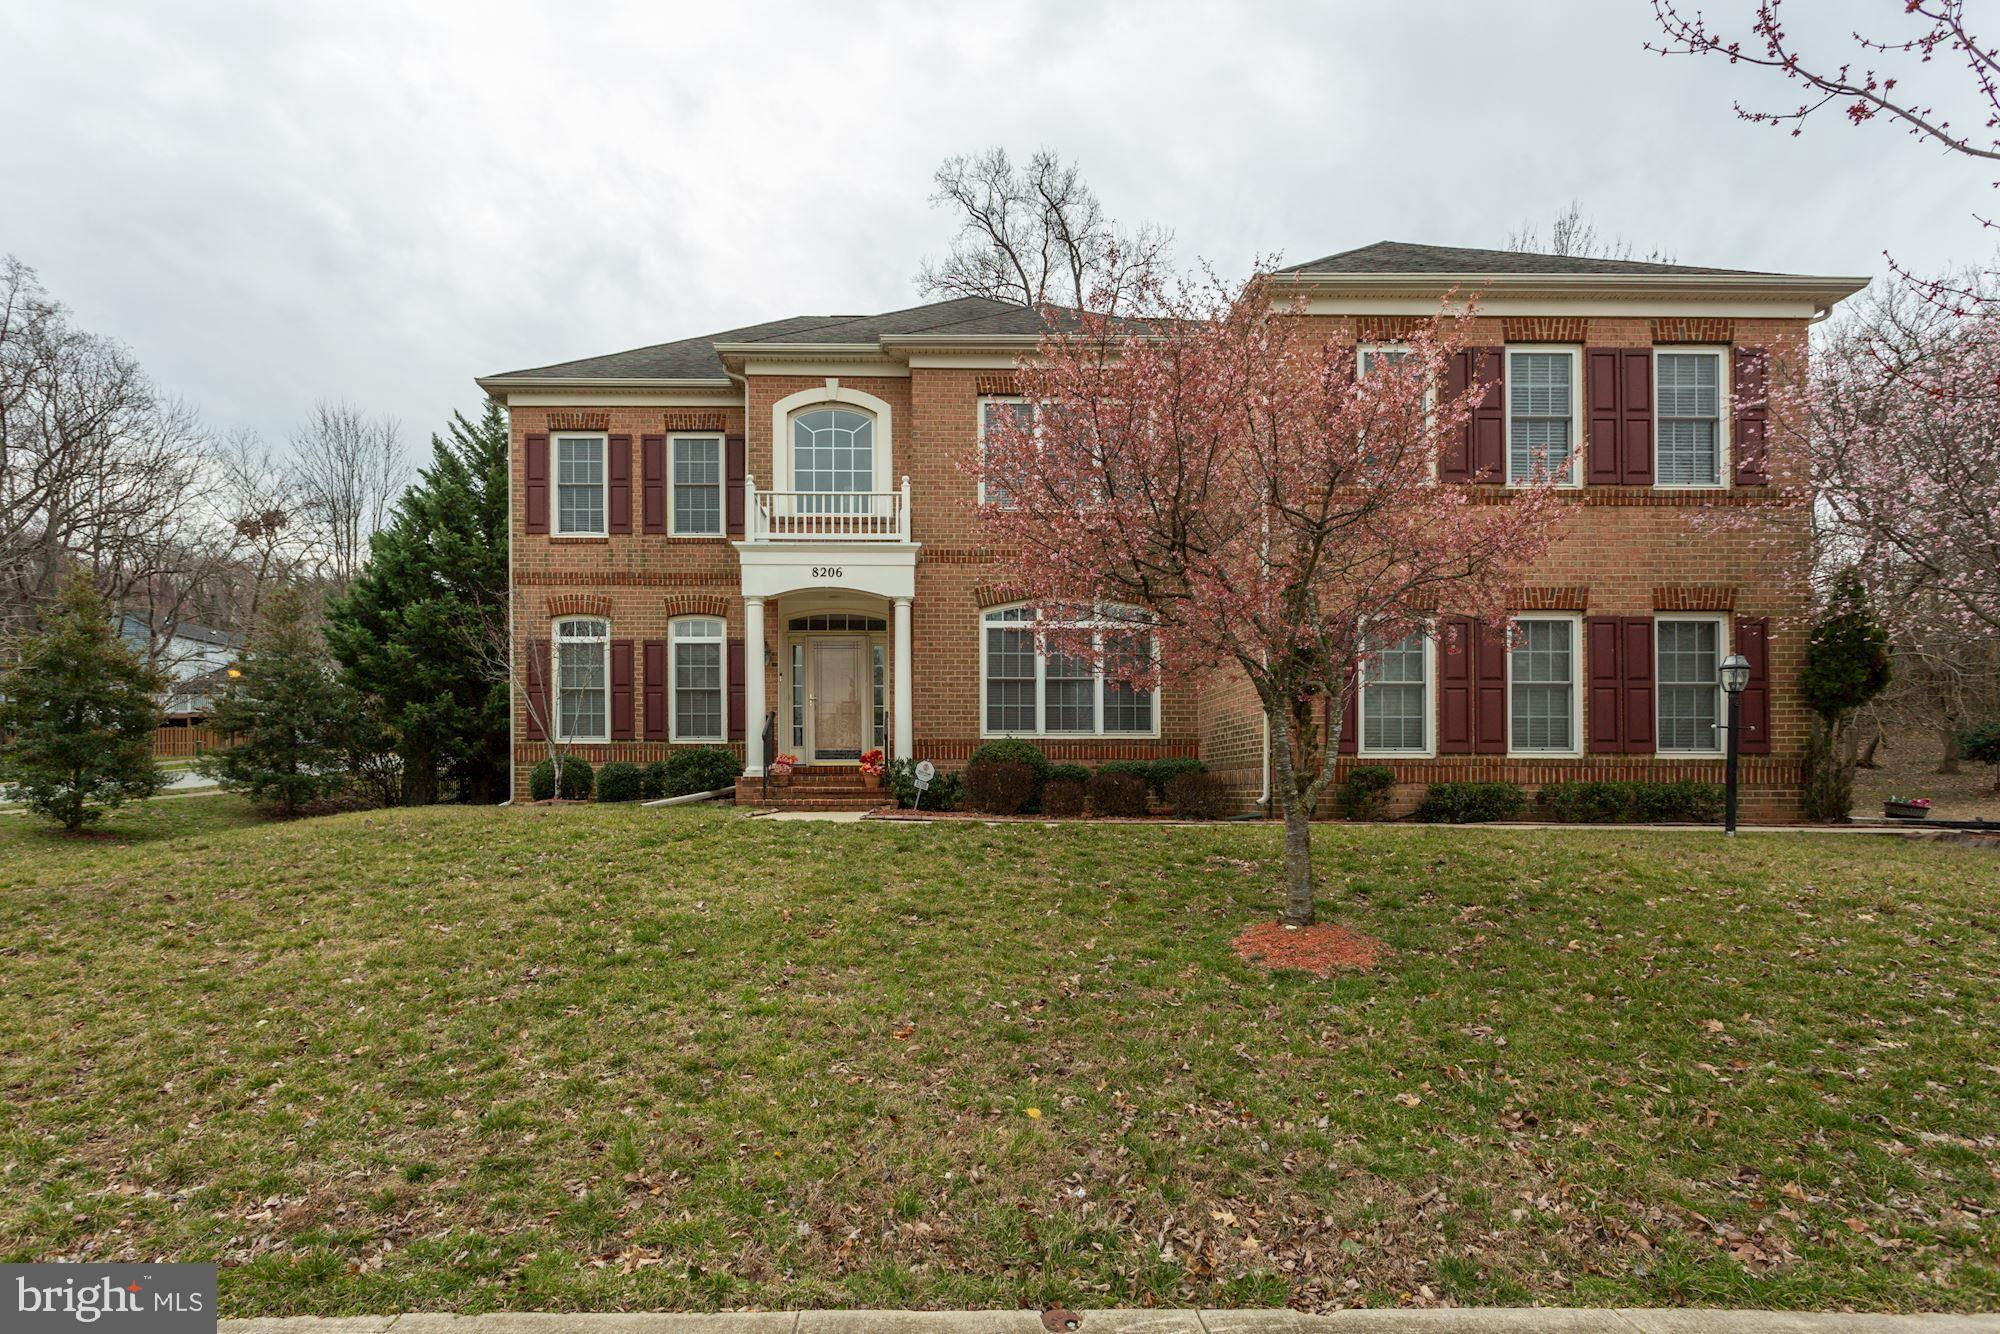 8206 WATERSIDE COURT, FORT WASHINGTON, MD 20744